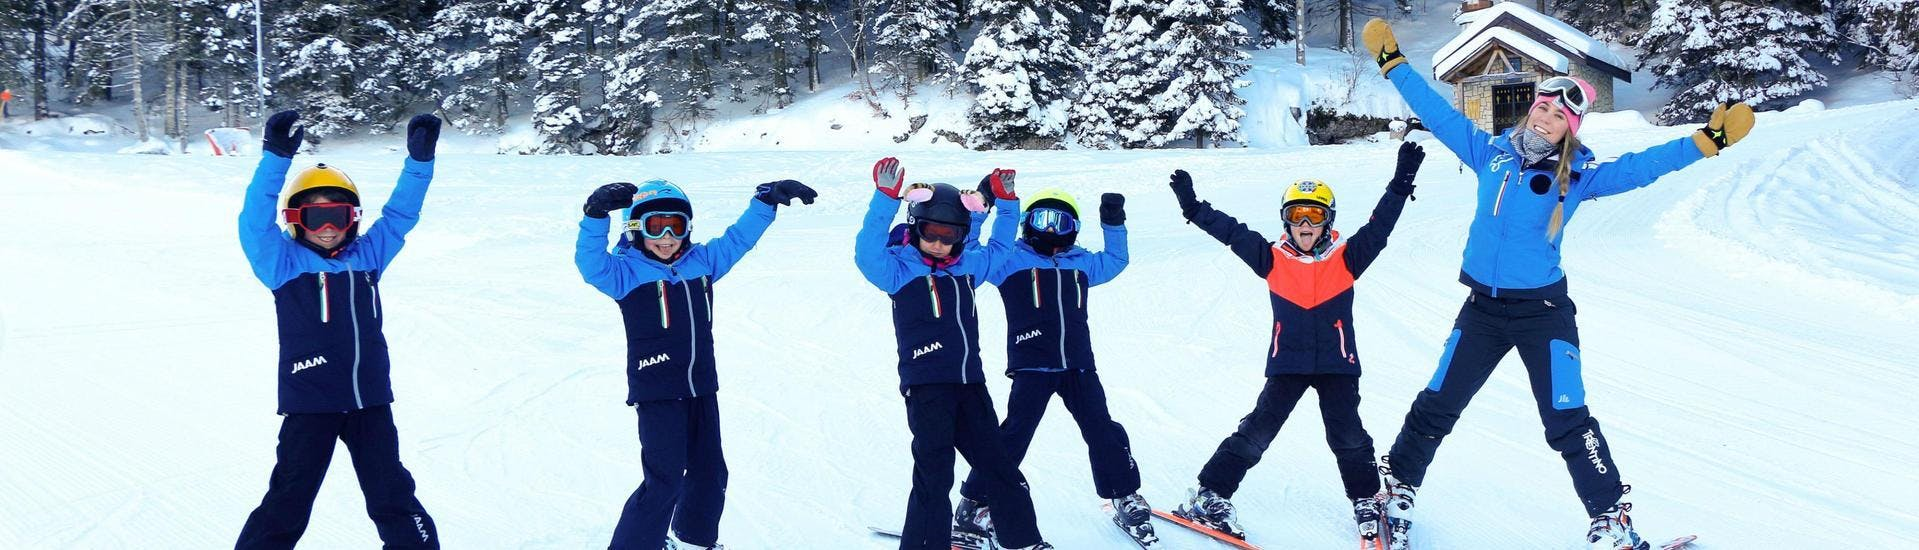 A group of kids is enjoying one of their ski lessons with their ski instructor from the ski school Scuola di Sci e Snowboard Alpe Cimbra in the ski resort of Folgaria.